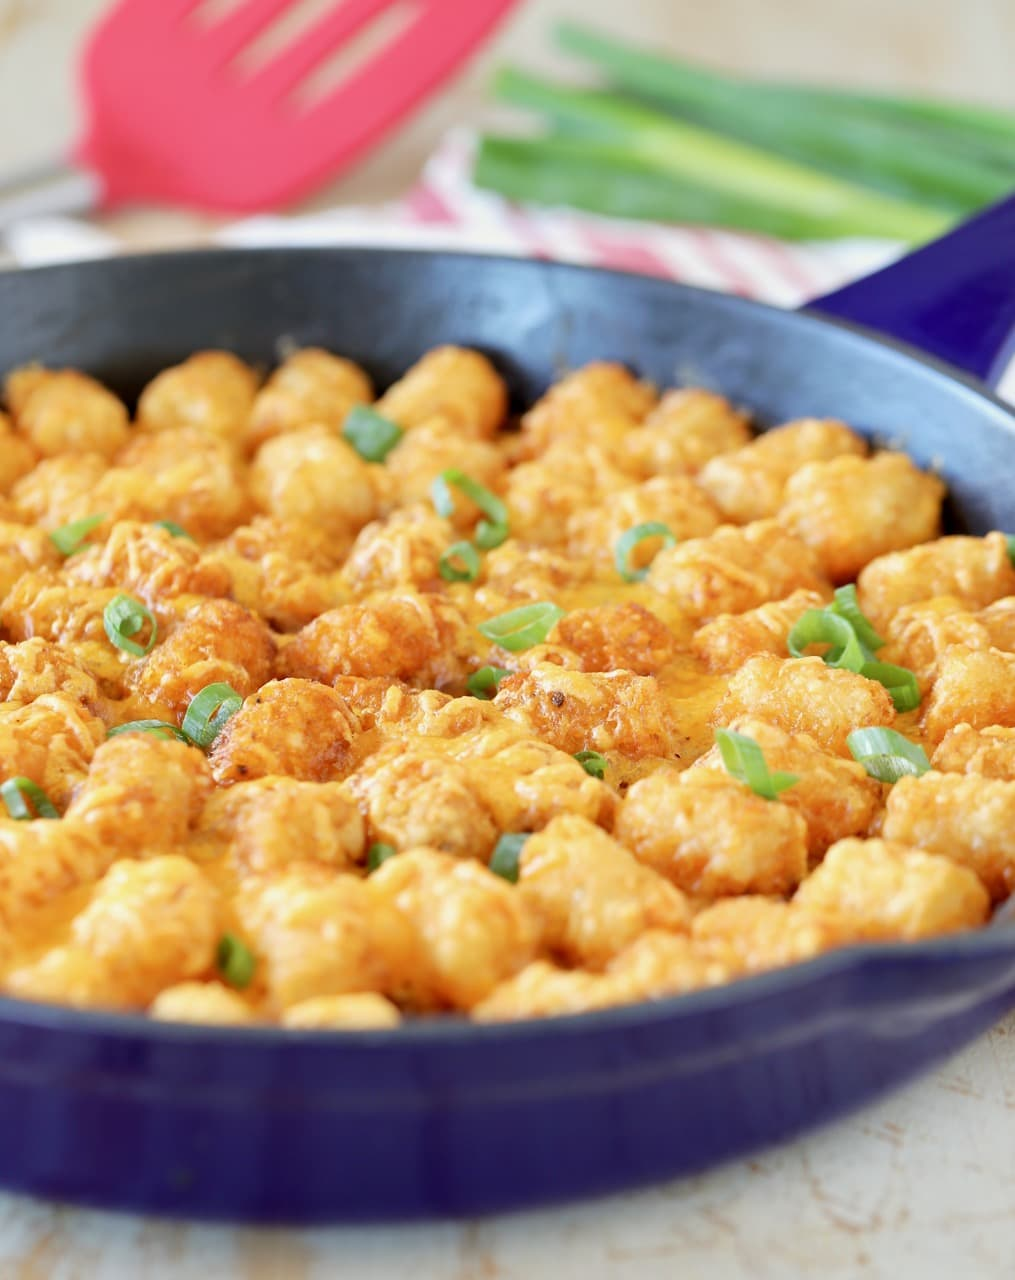 Tater Tot casserole with diced green onions in blue cast iron skillet with red spatula